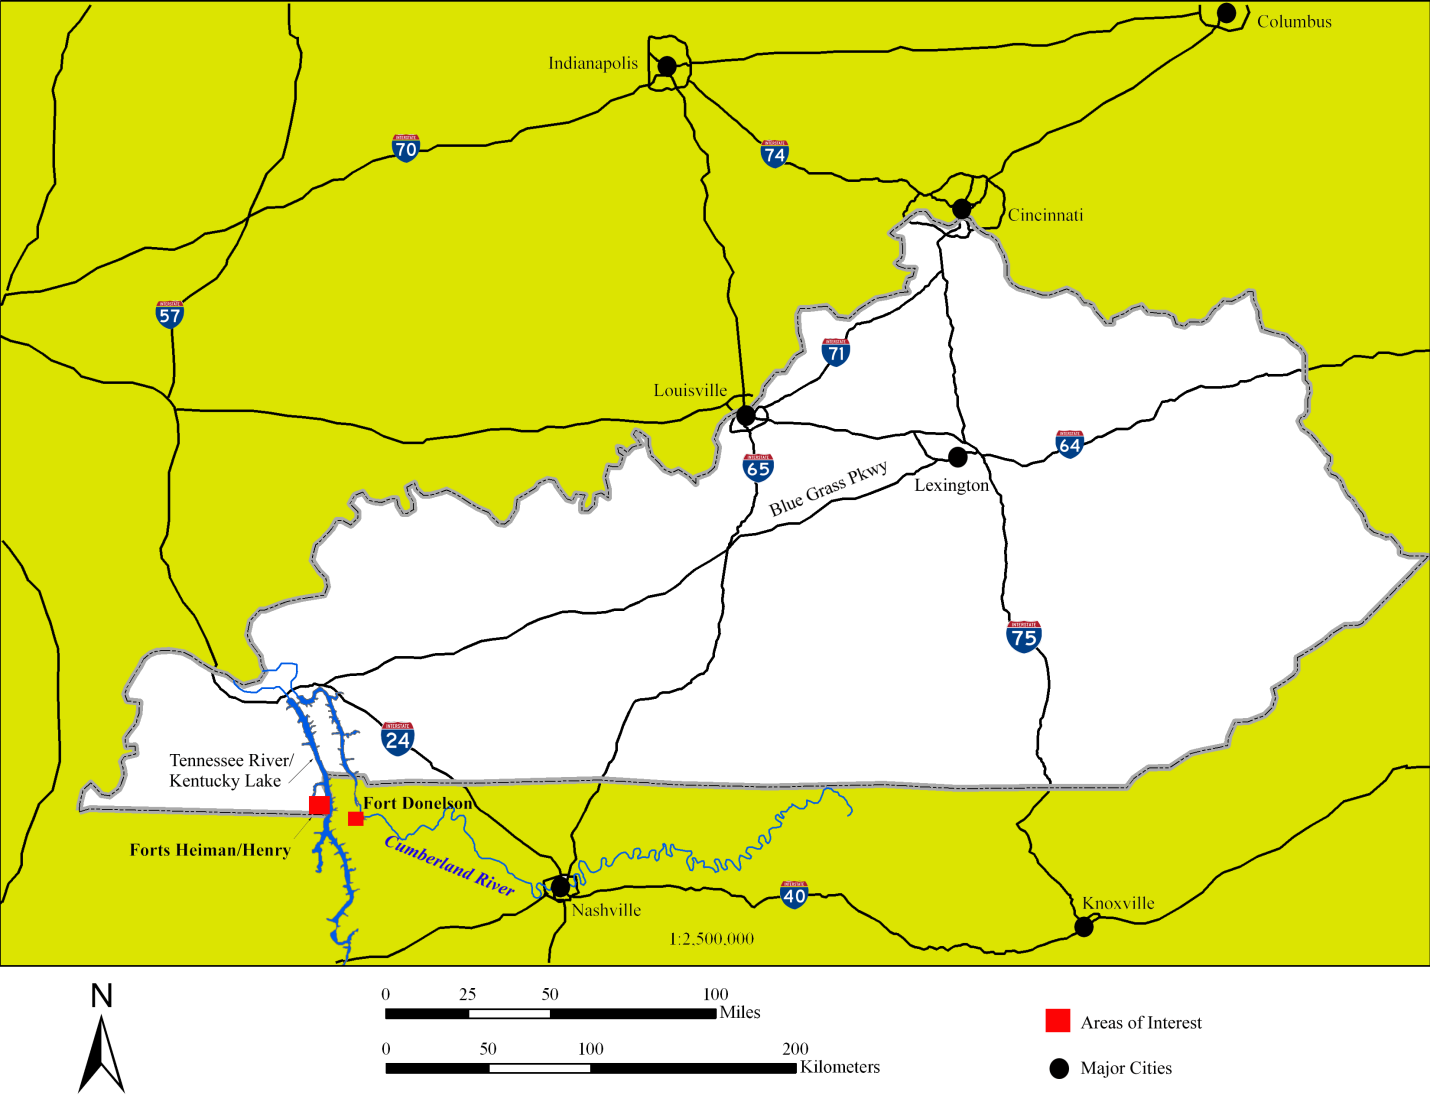 Imagepng - Ft donelson river on us map